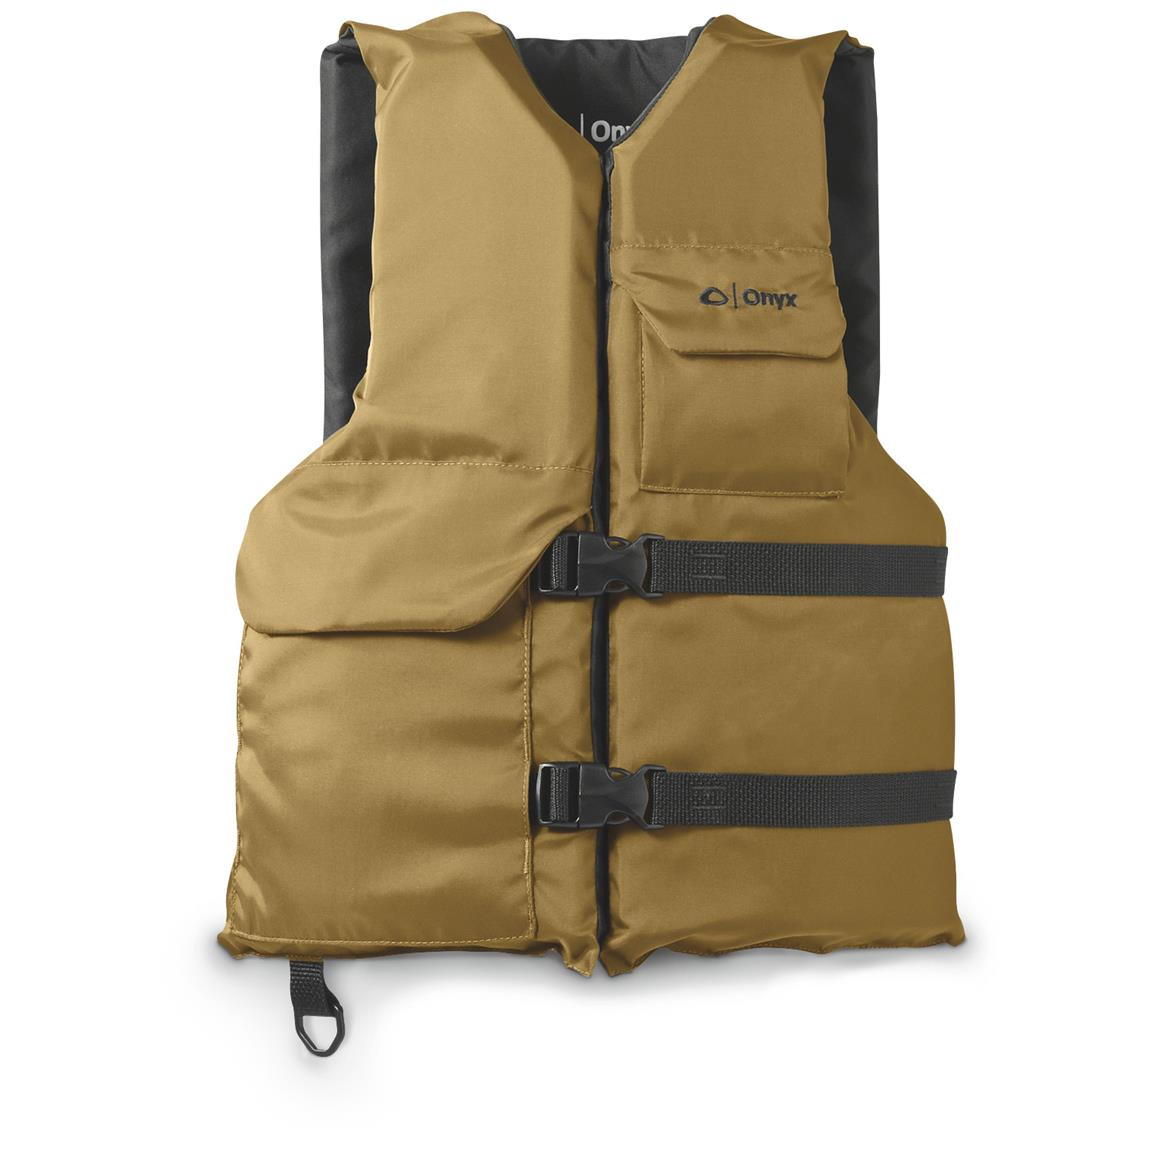 Onyx Adult Universal Sports Life Vest, Tan / Black